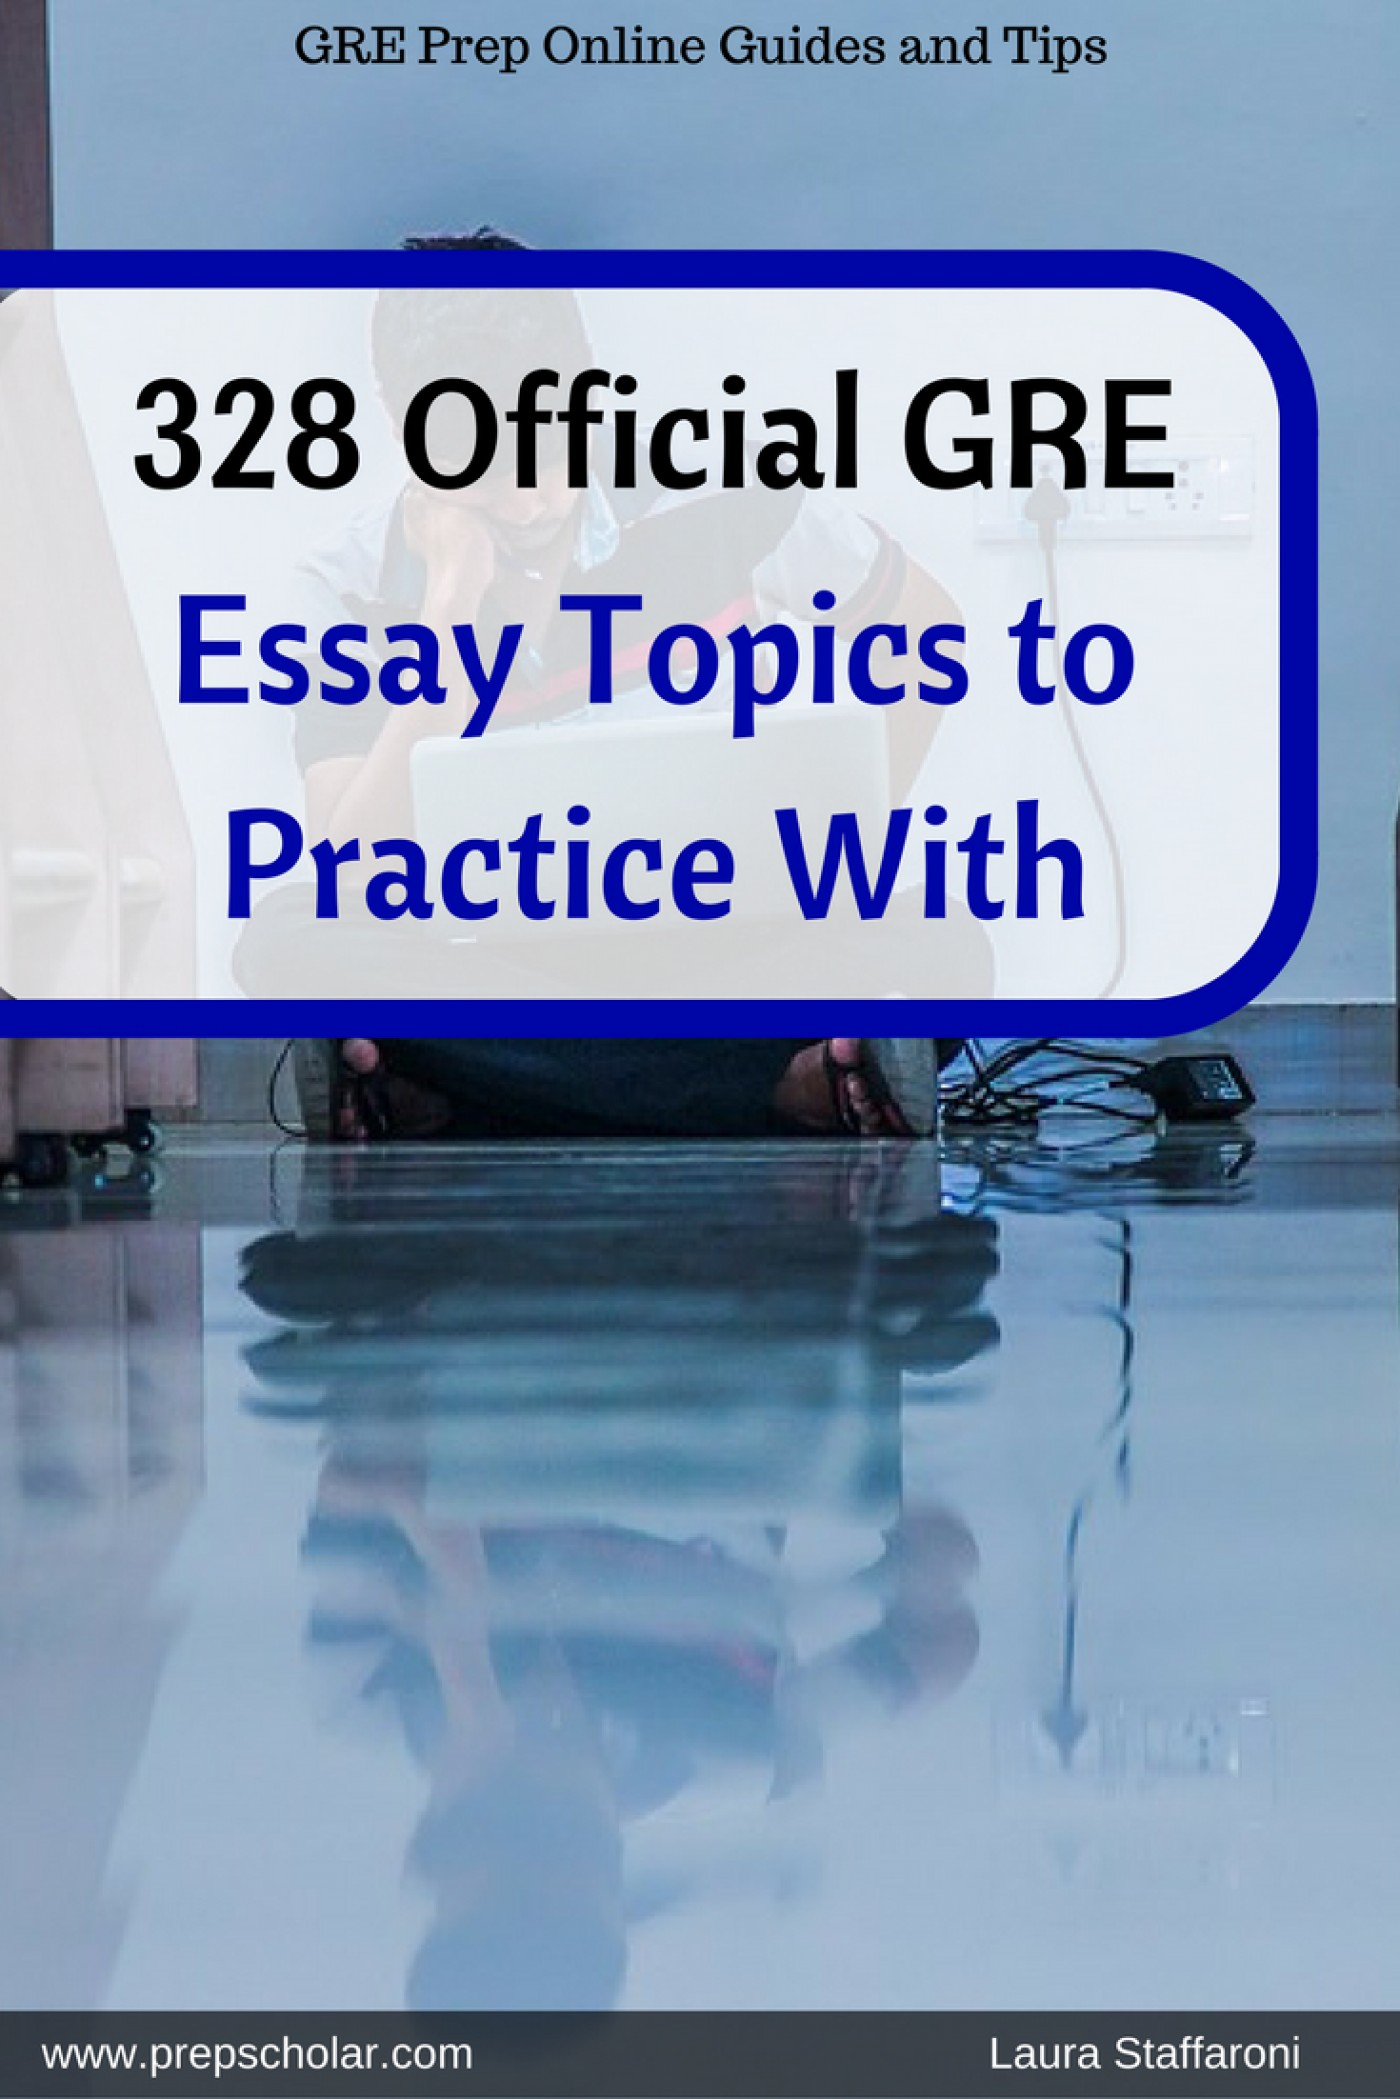 015 Essay Example Remarkable Gre Topics Pdf Analytical Writing Grader Issue Pool Solutions 1400